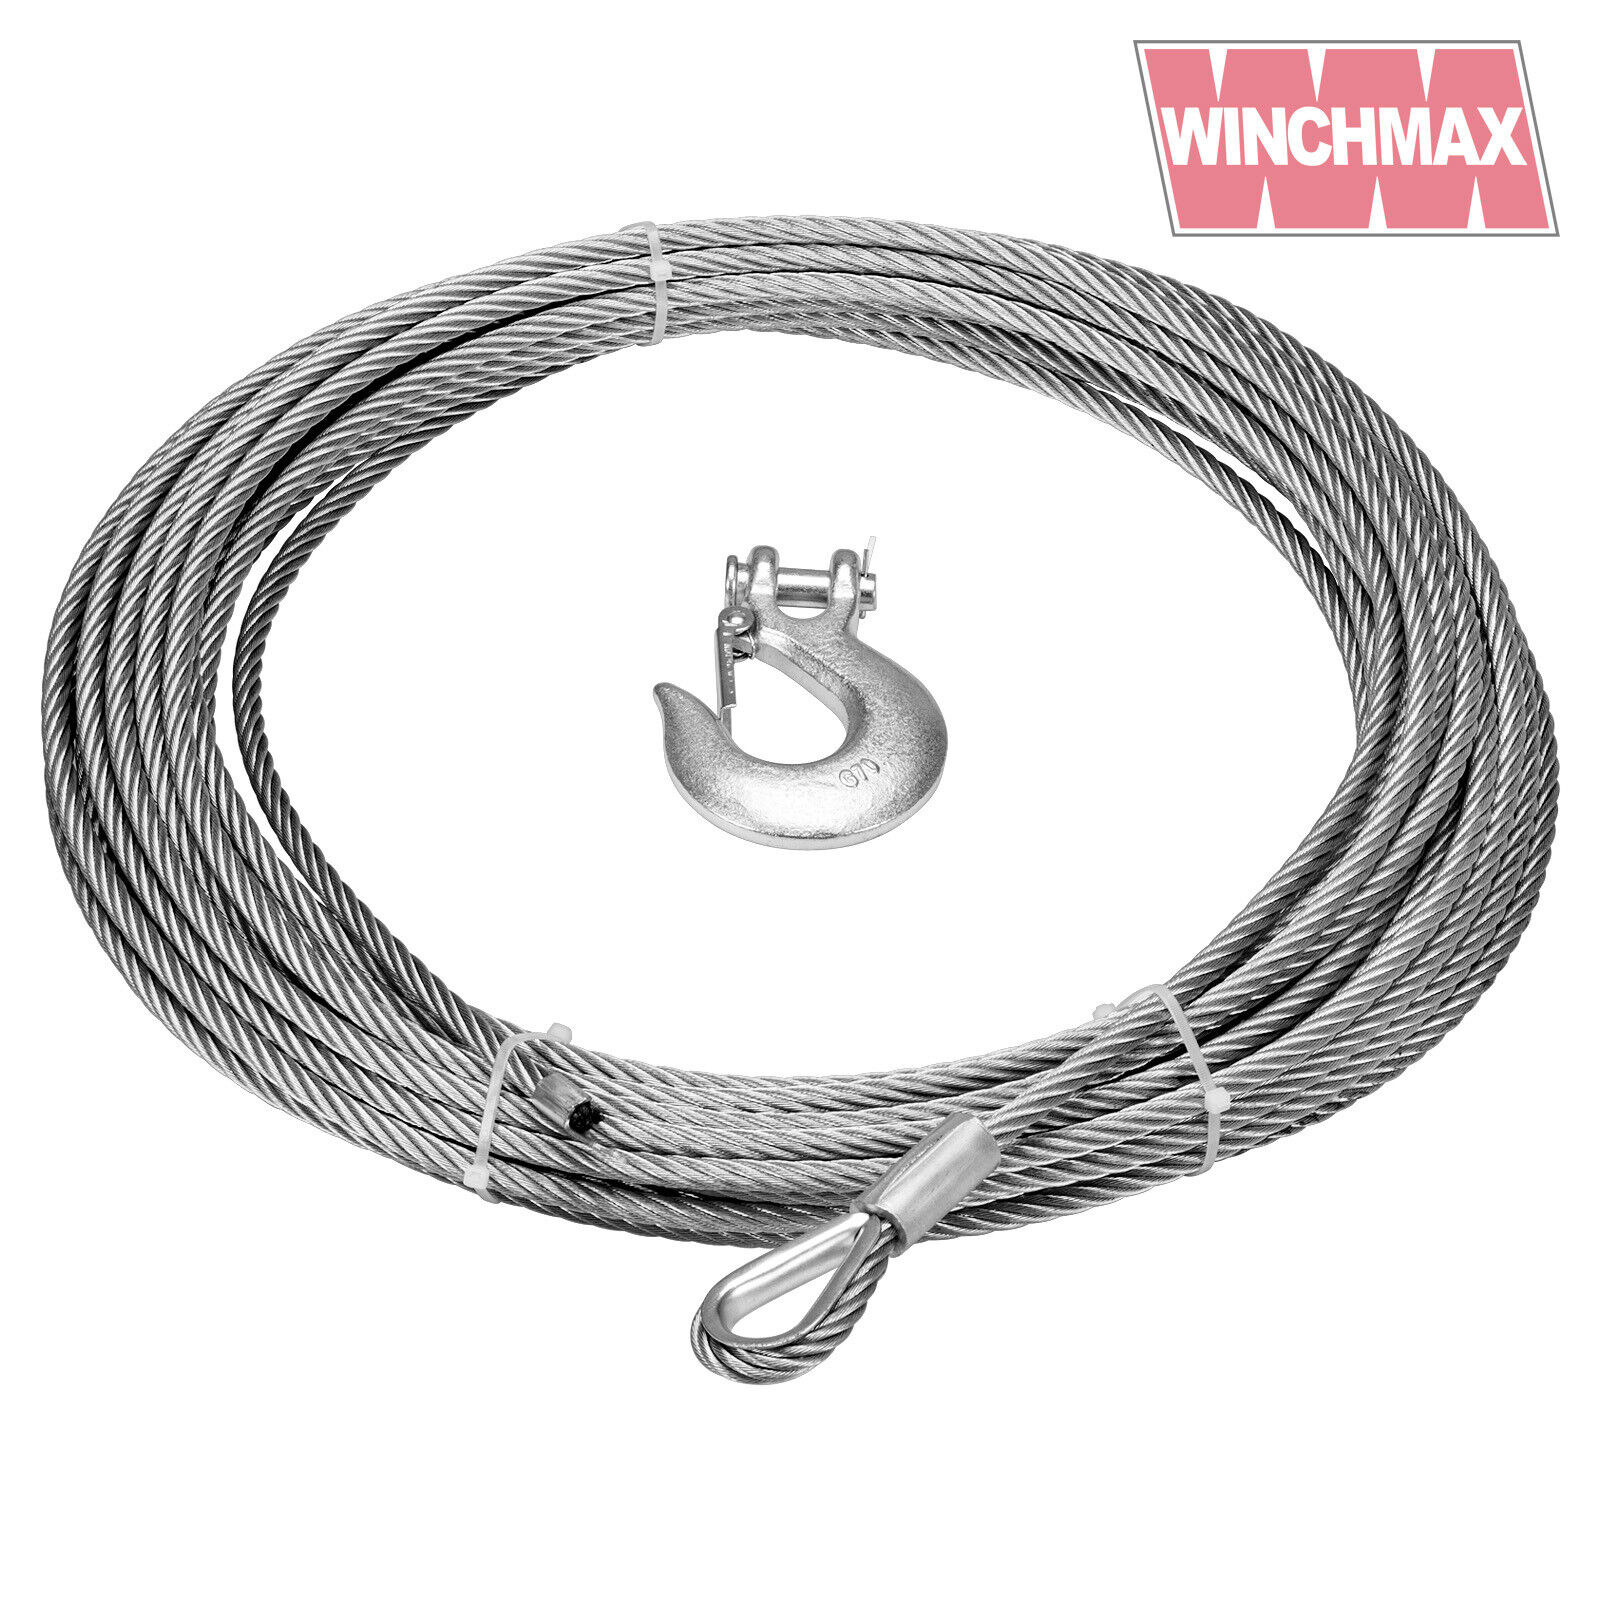 WINCH CABLE WIRE Rope 15m x 9,5 mm suitible for winches up to 13,500 ...